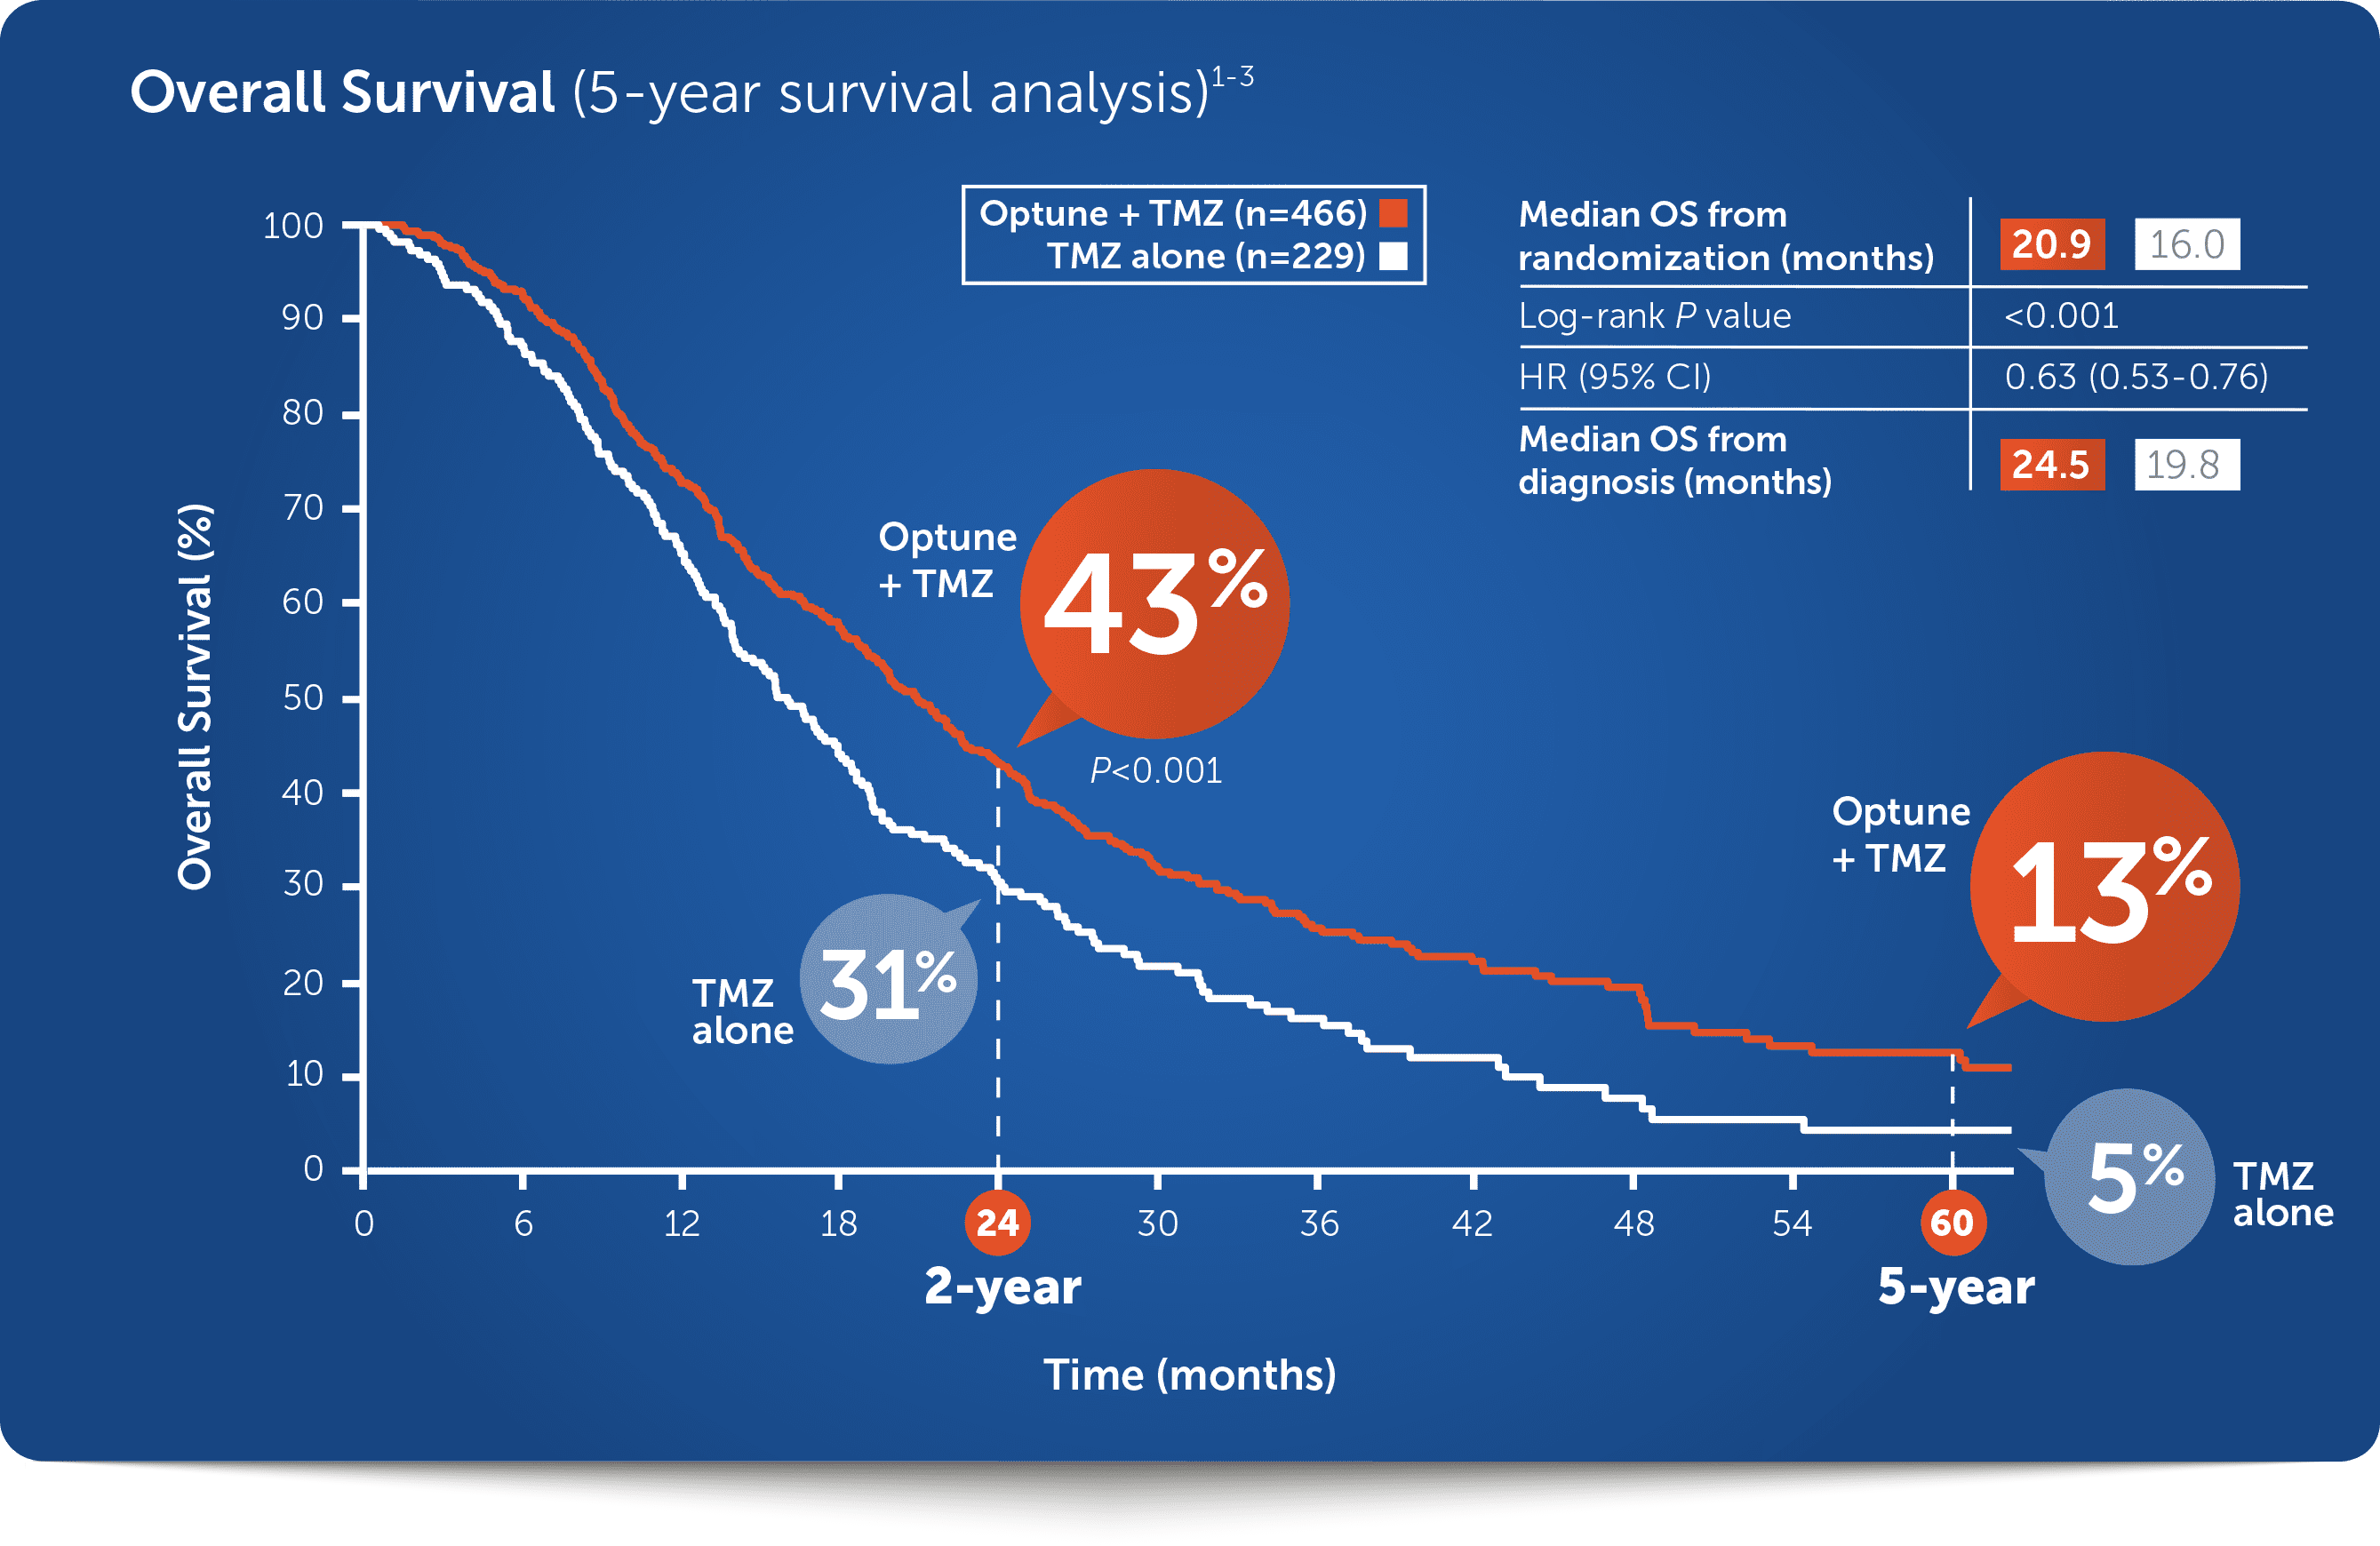 5-year Survival with Optune®